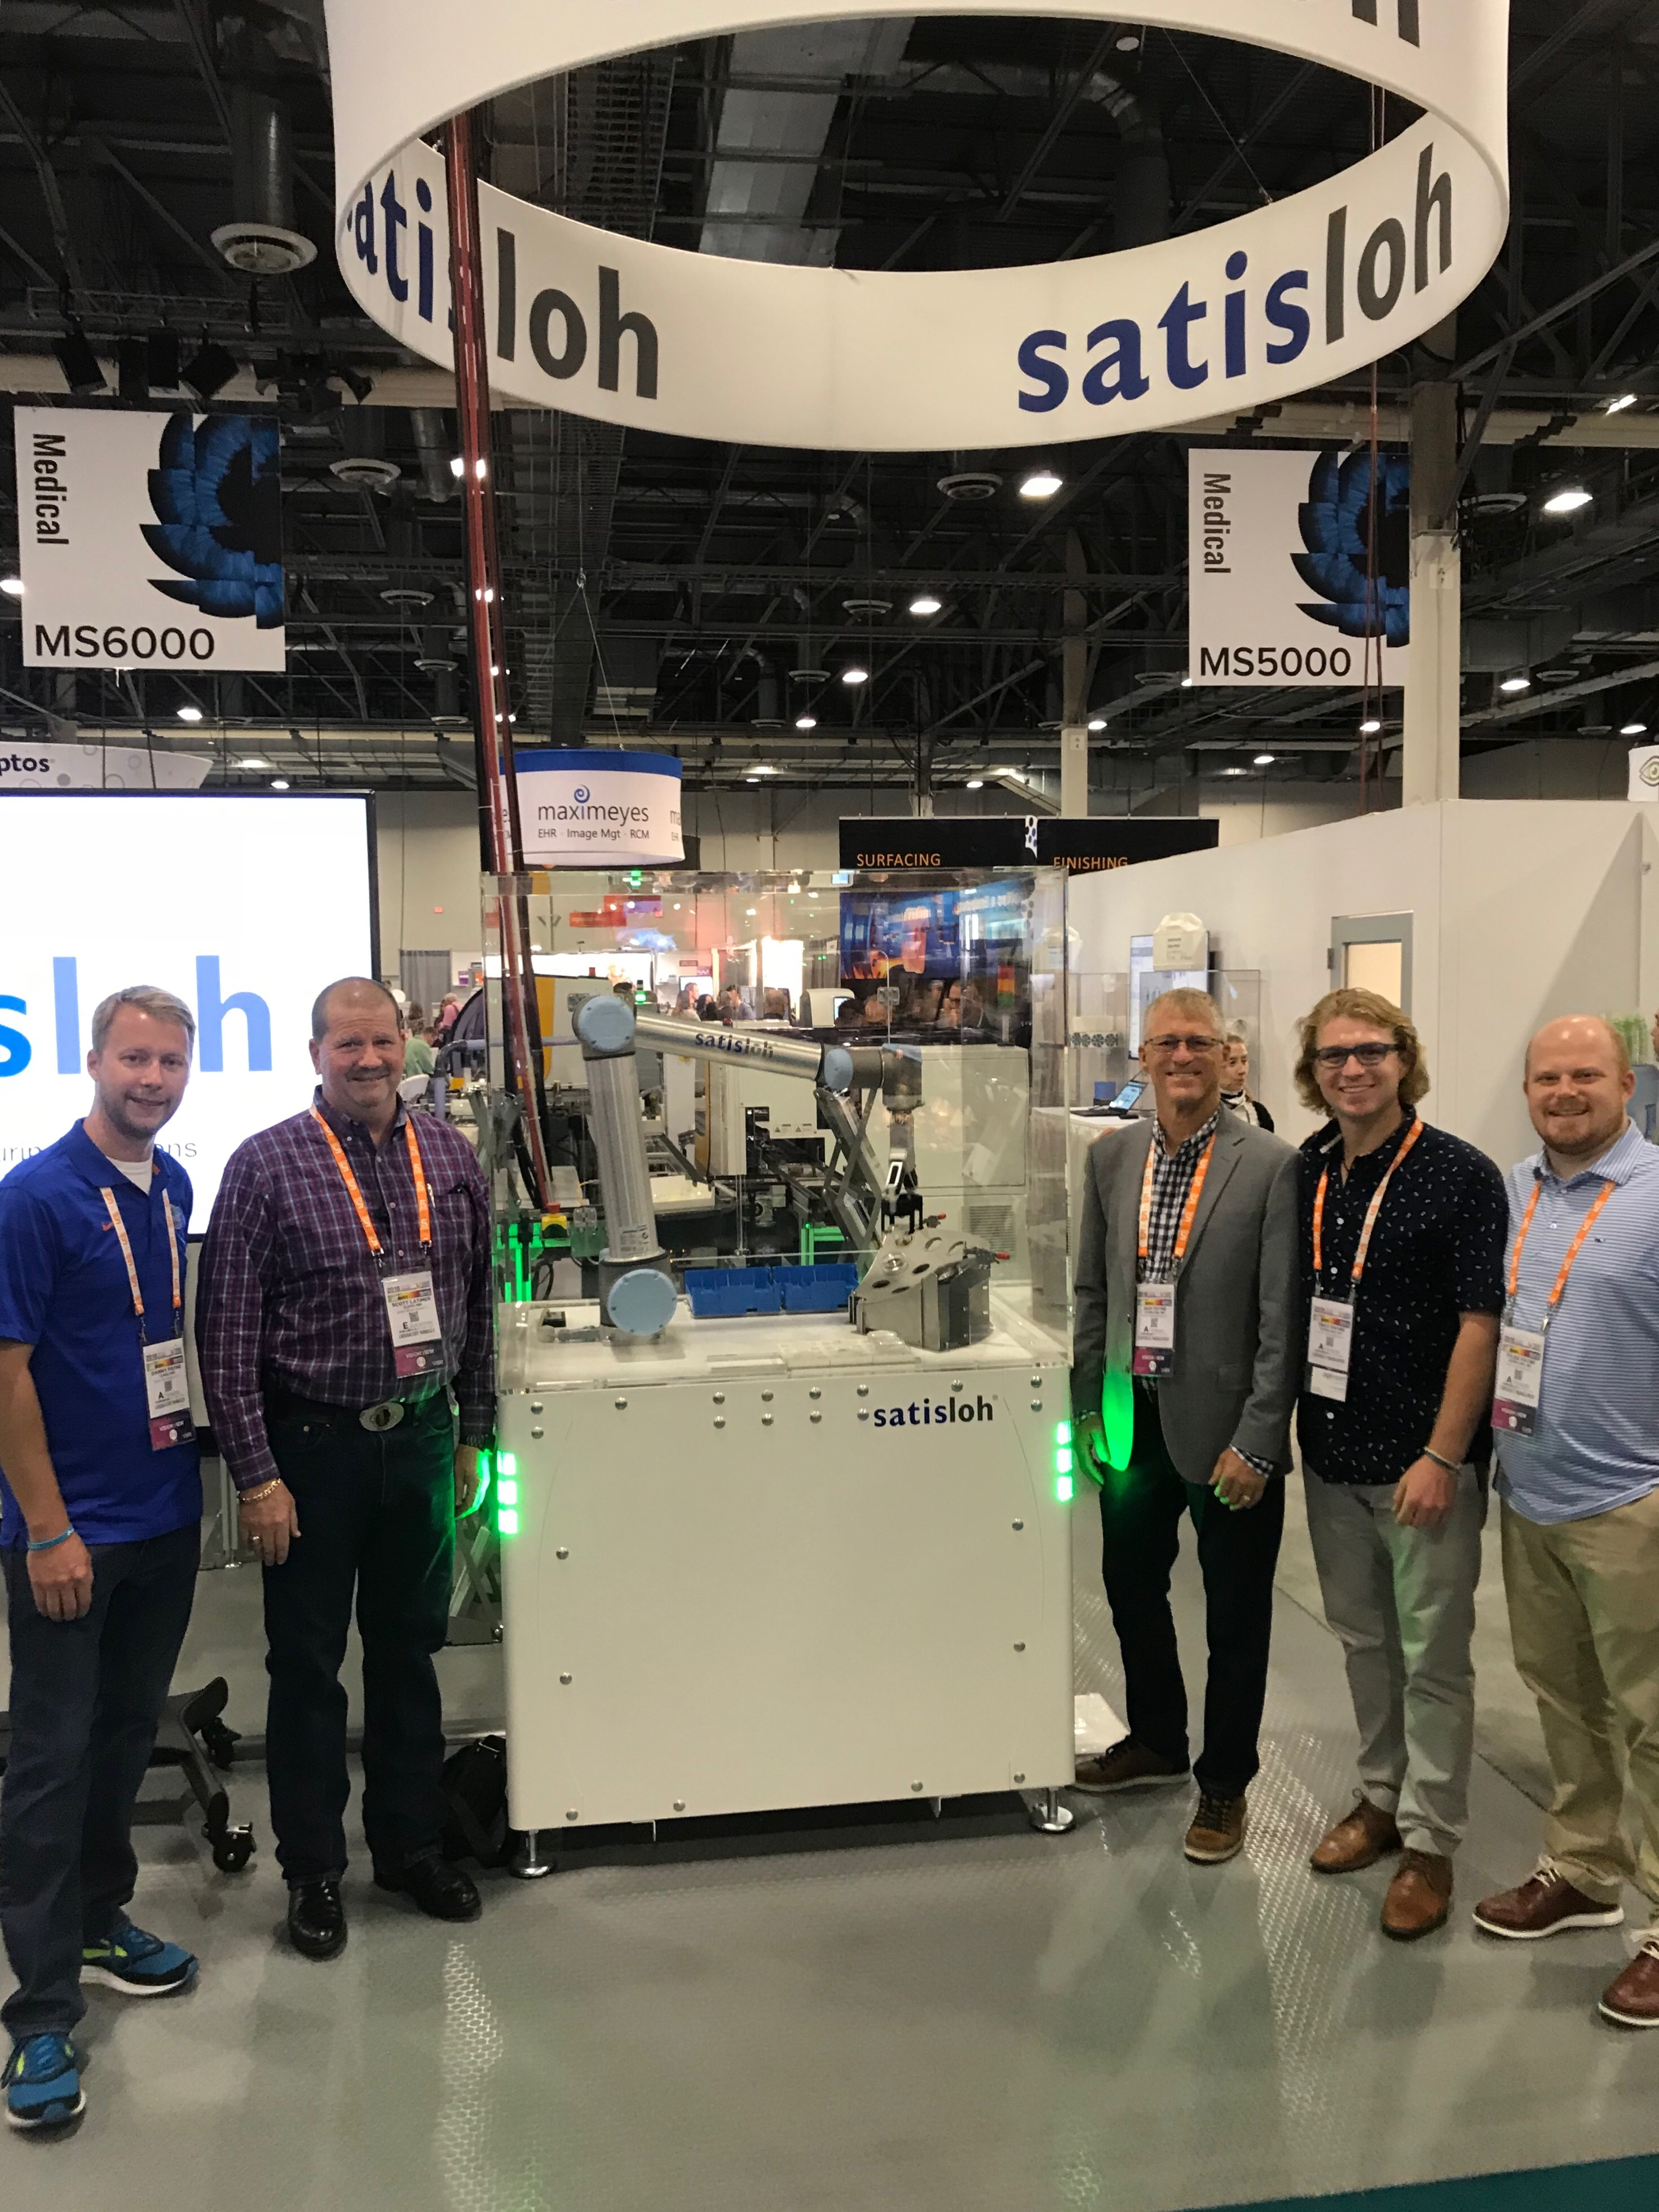 IcareLabs at Vision Expo West 2018